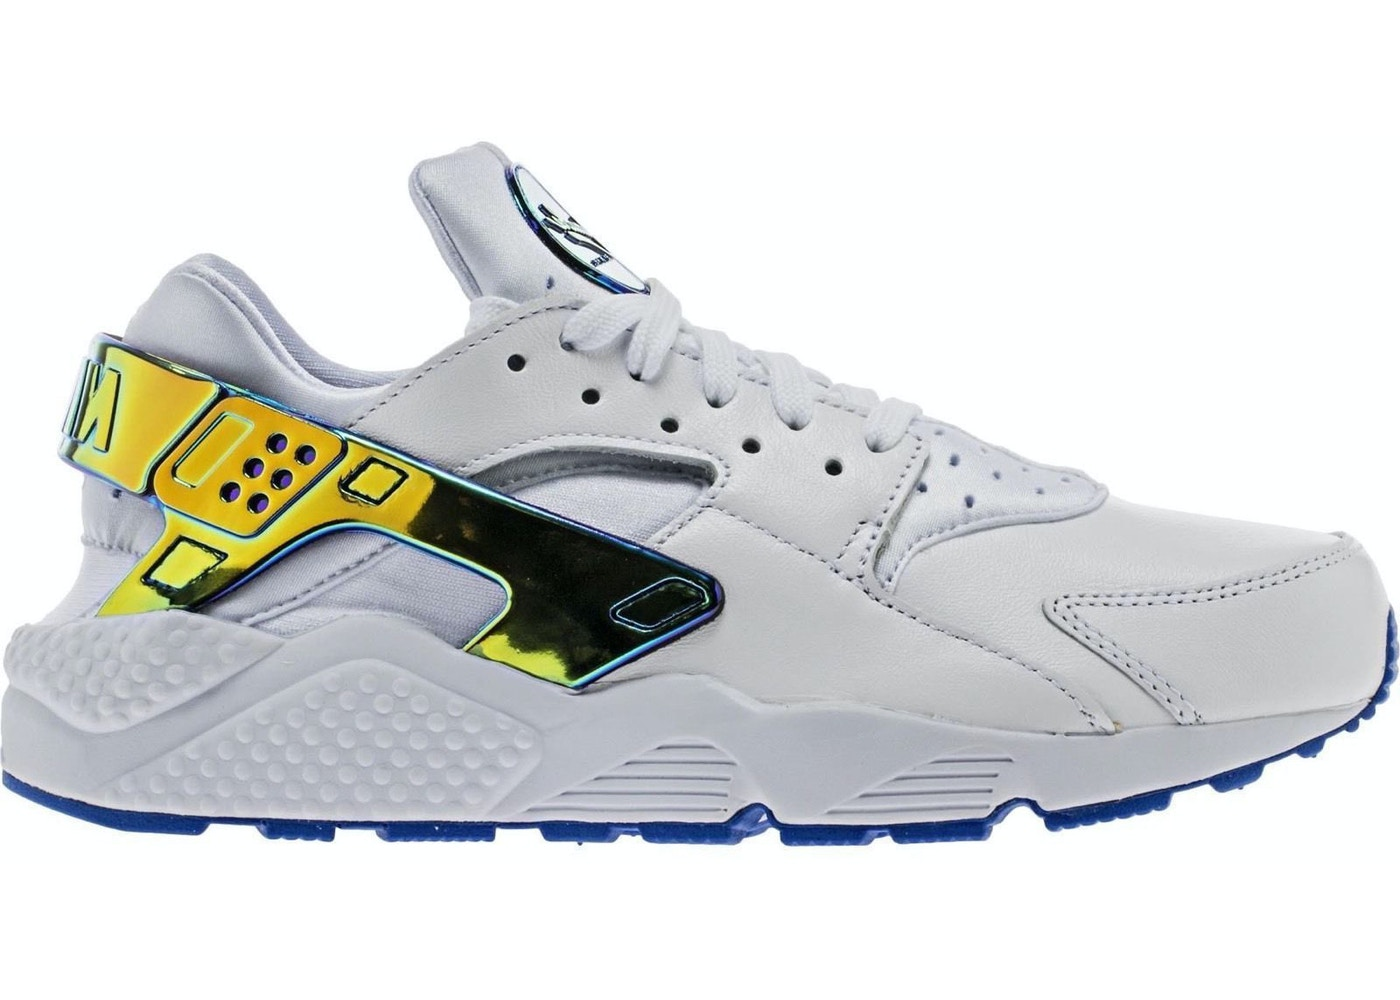 Air Huarache Nice Kicks Low Rider - 853940-441 f628b1b52